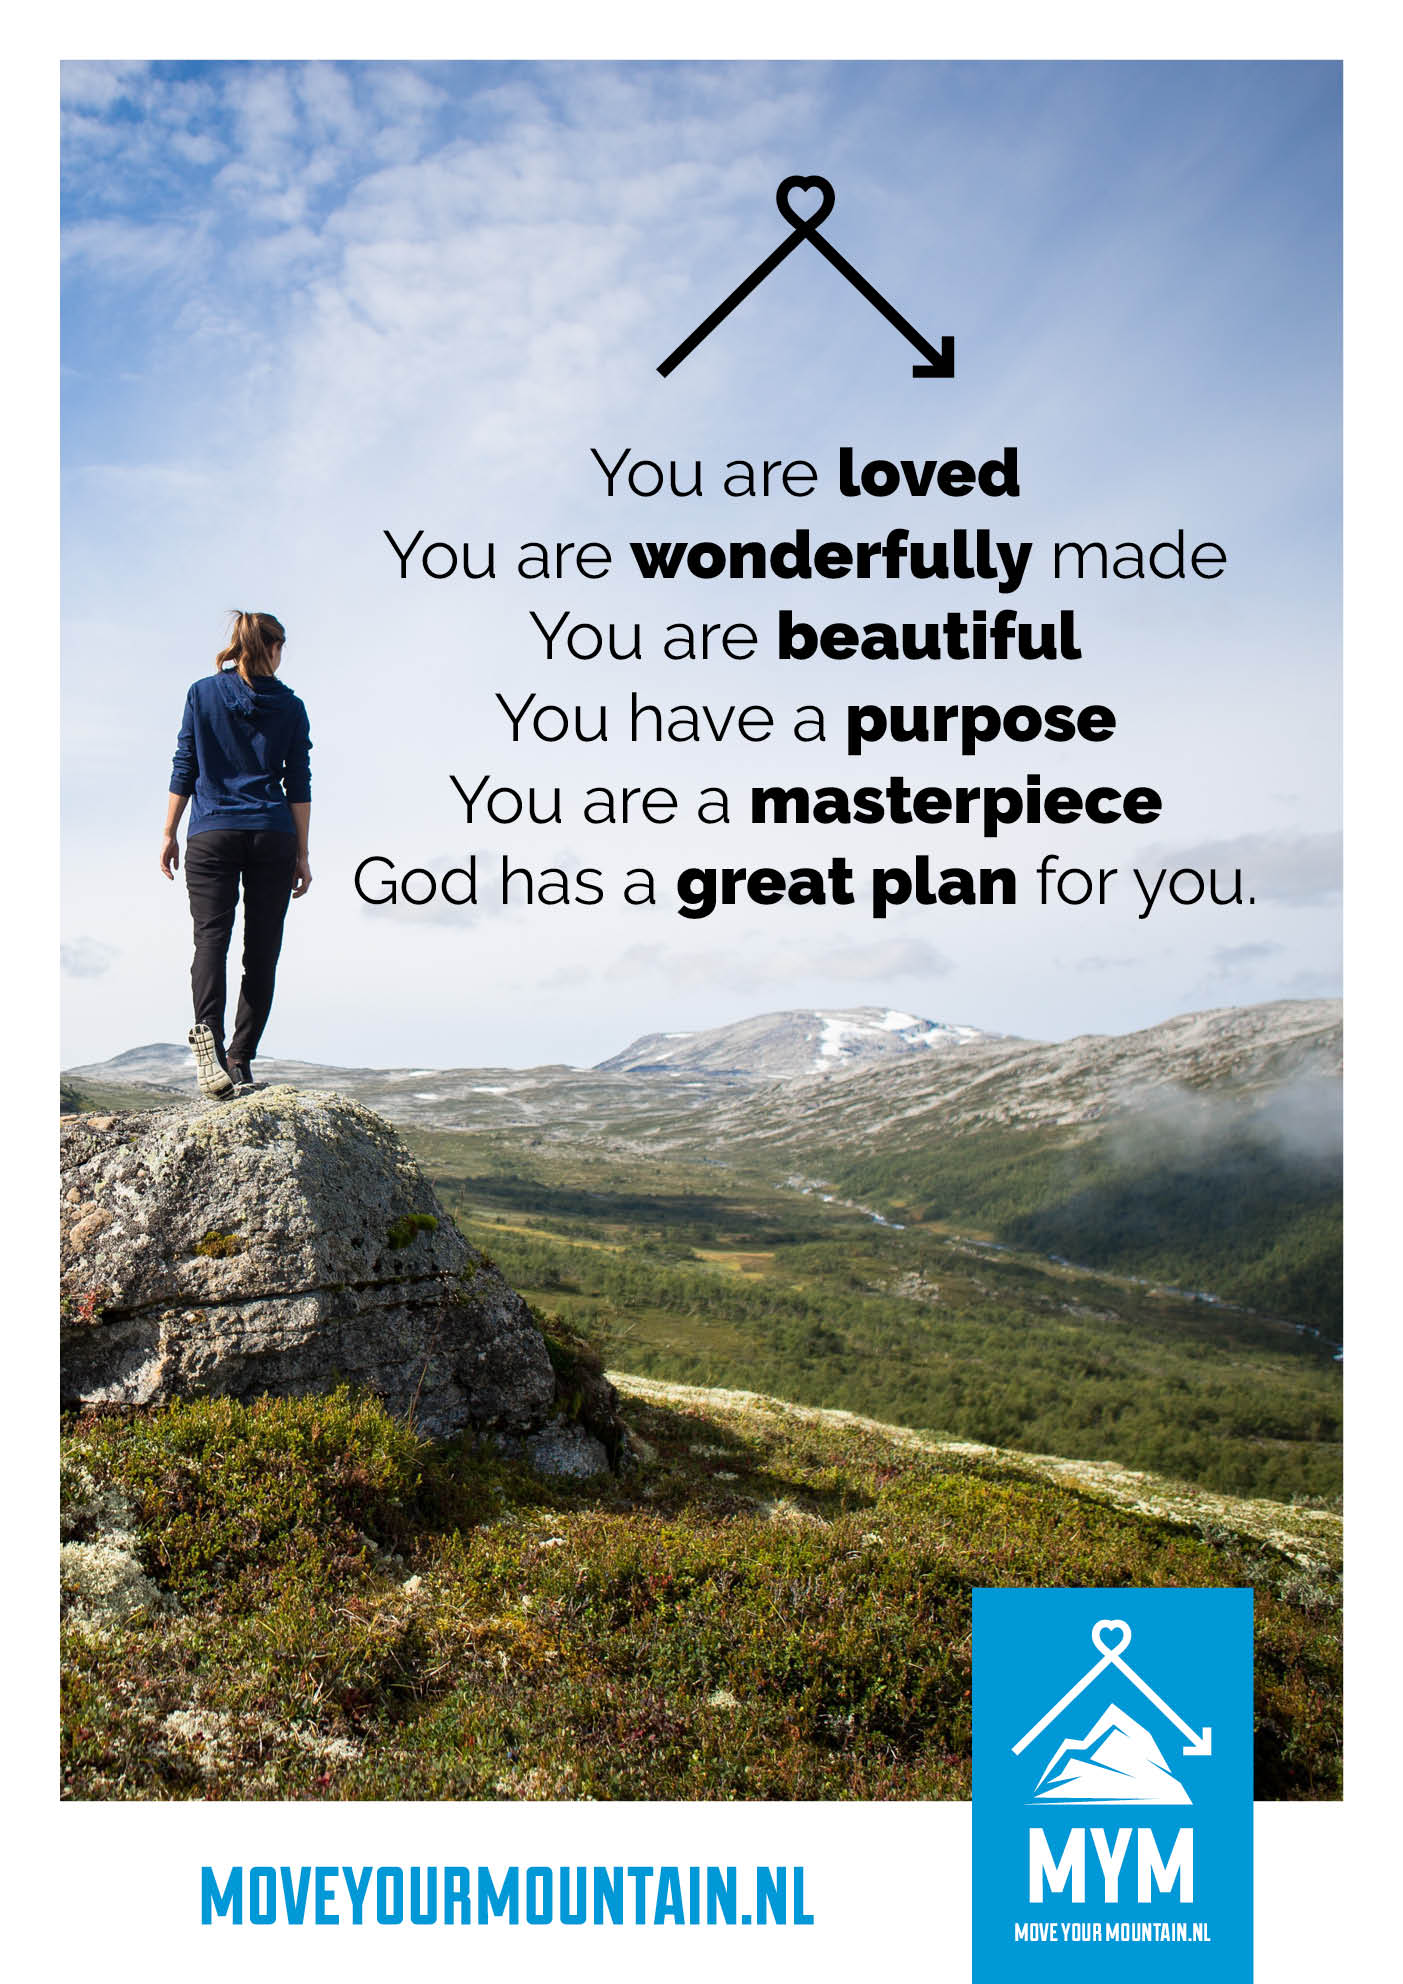 You are loved. You are wonderfully made. You are beautiful. You are purpose. You are a masterpiece. God has a great plan for you.